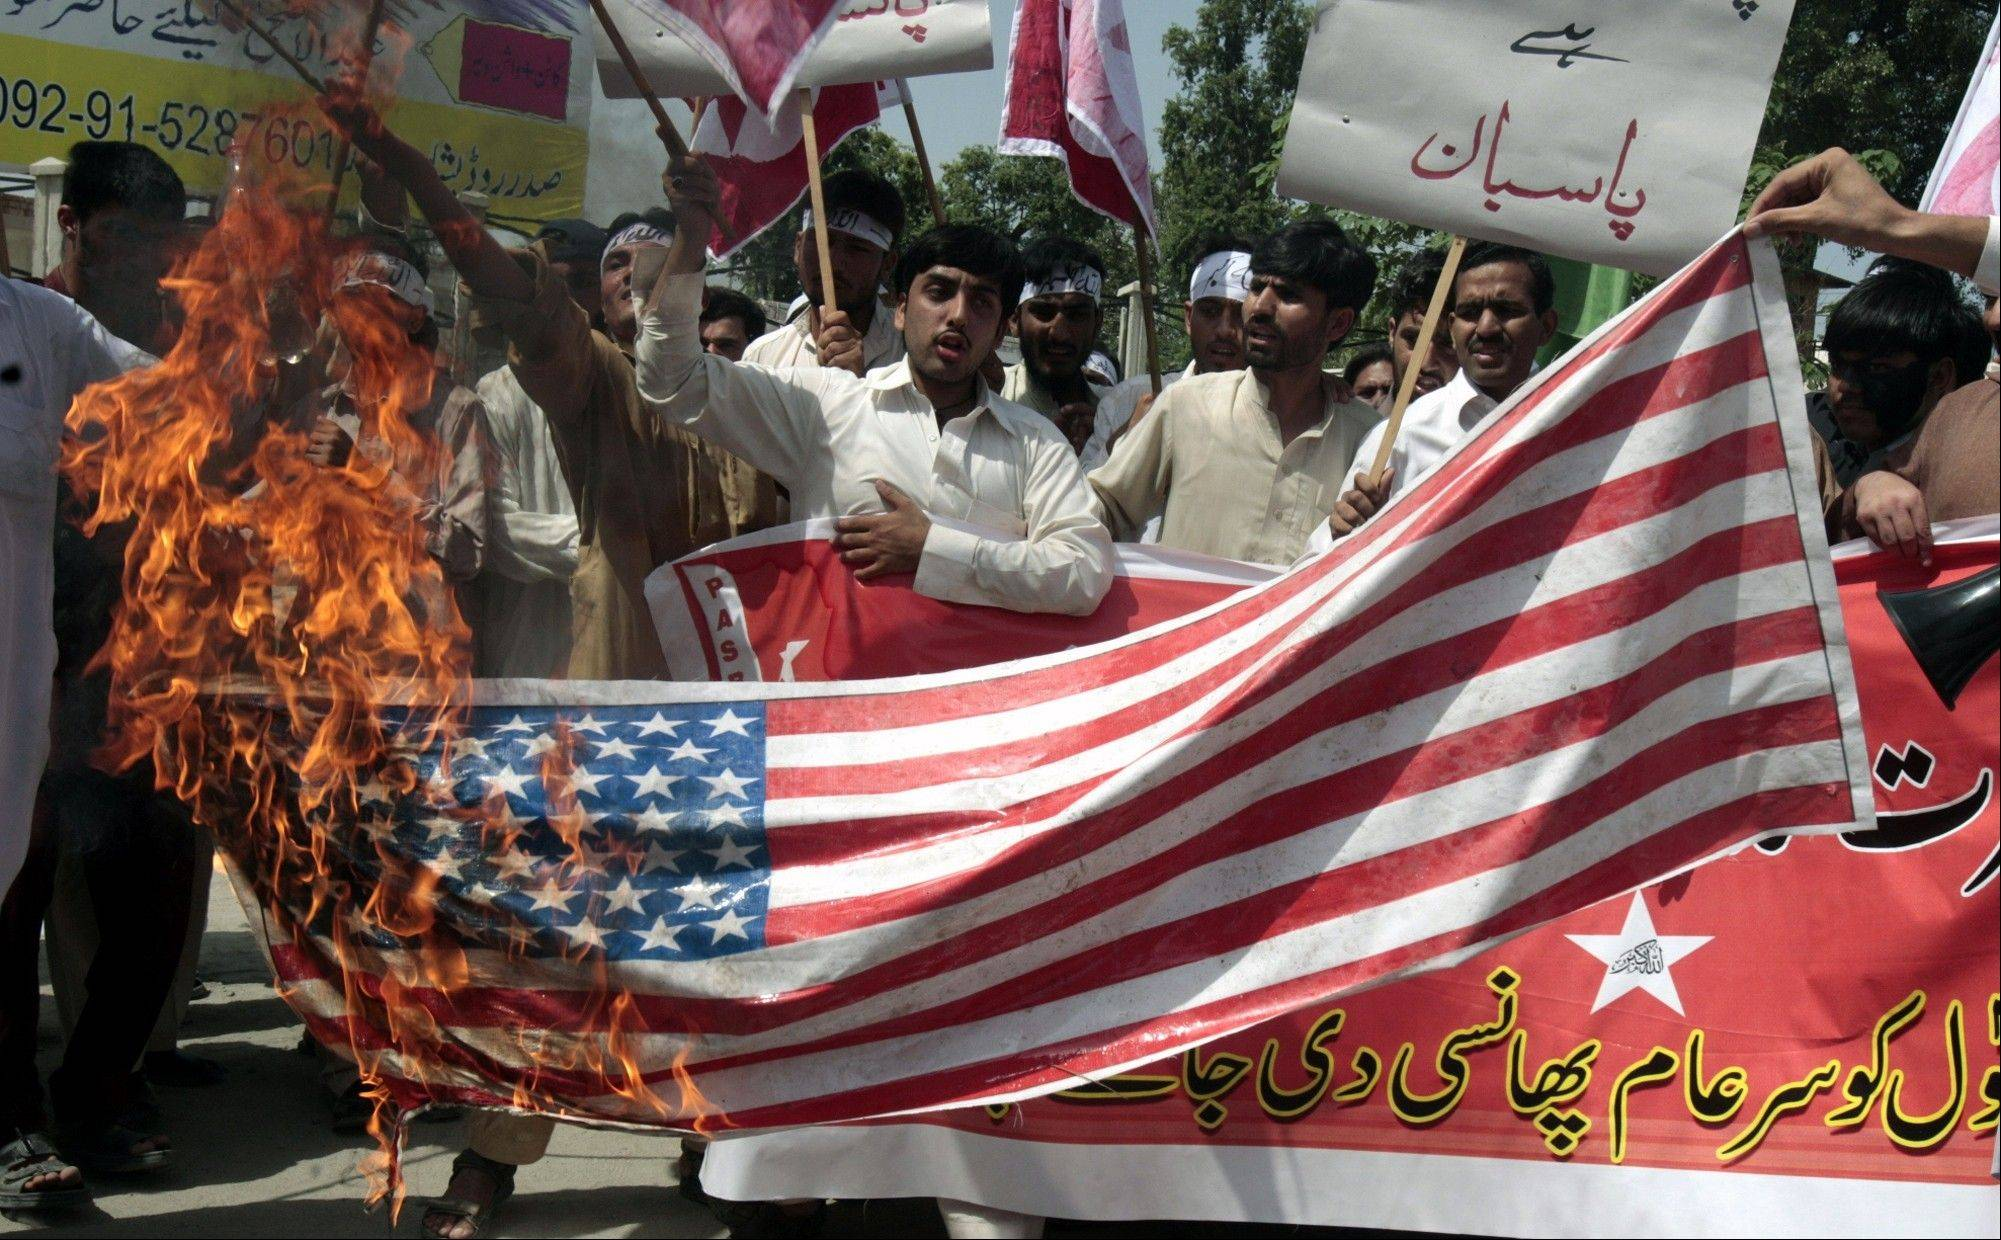 Al-Qaida threatens attacks on US diplomats